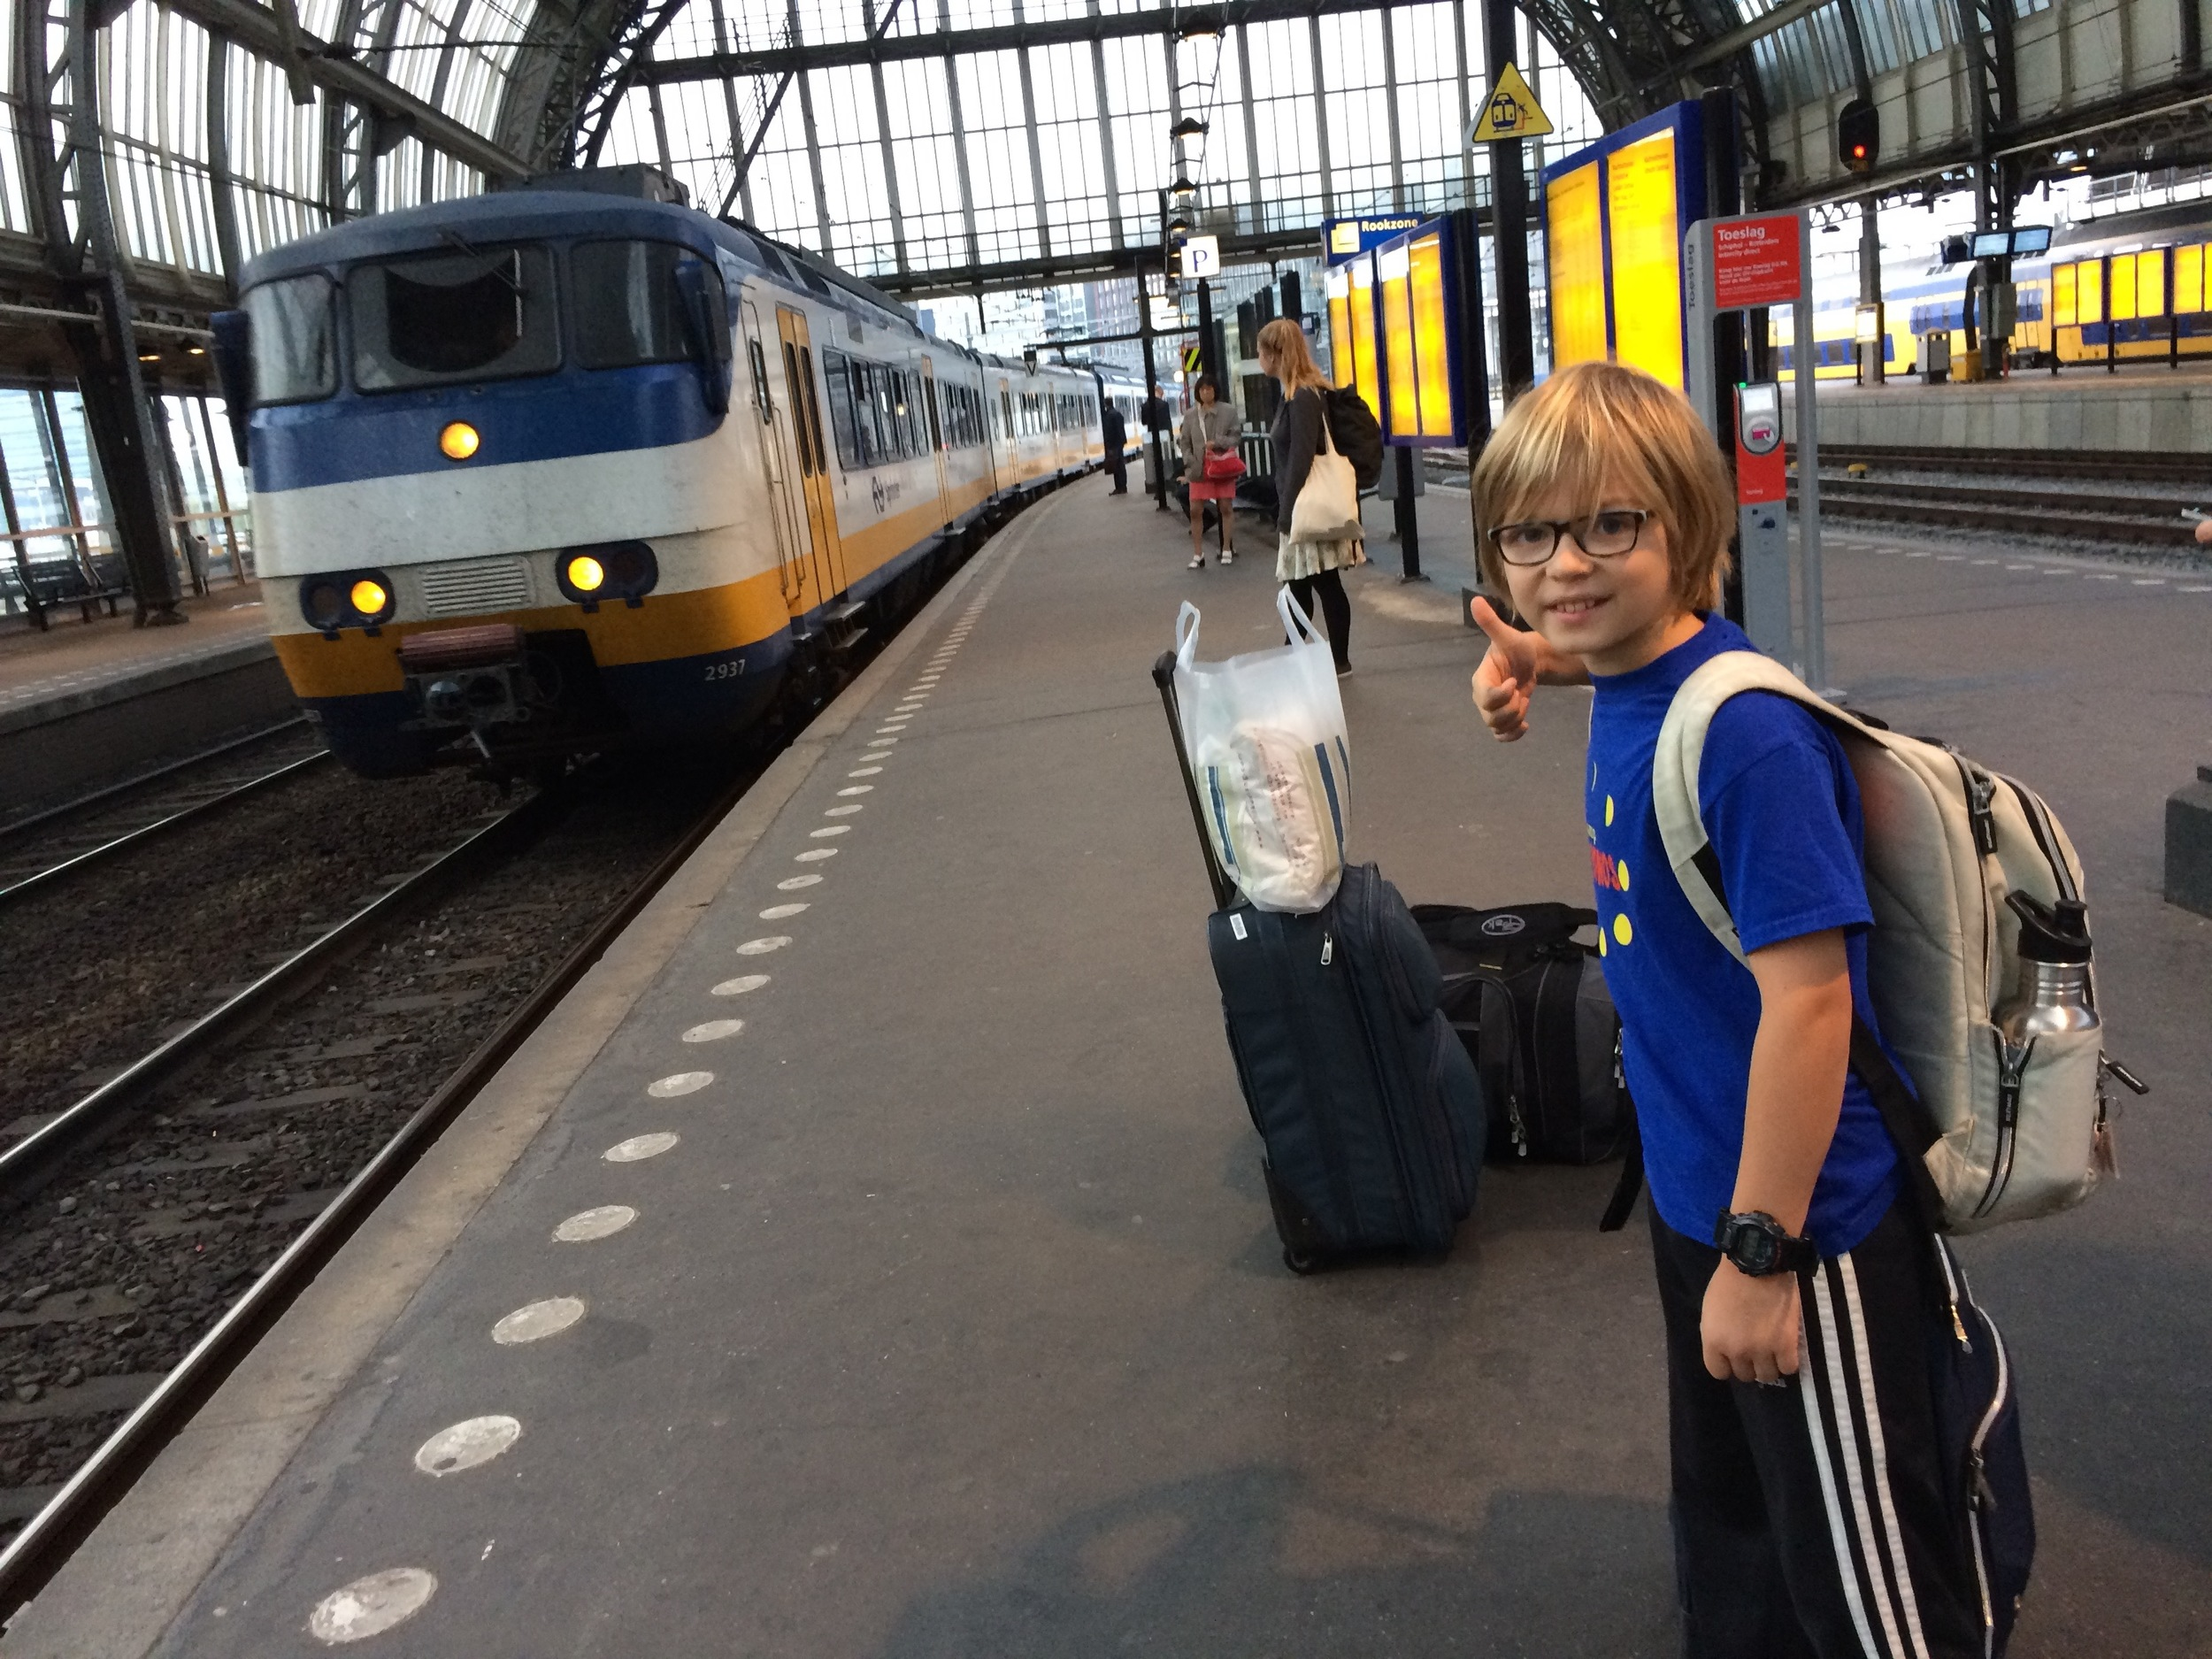 The train arrives to take us to Schiphol airport - and home.